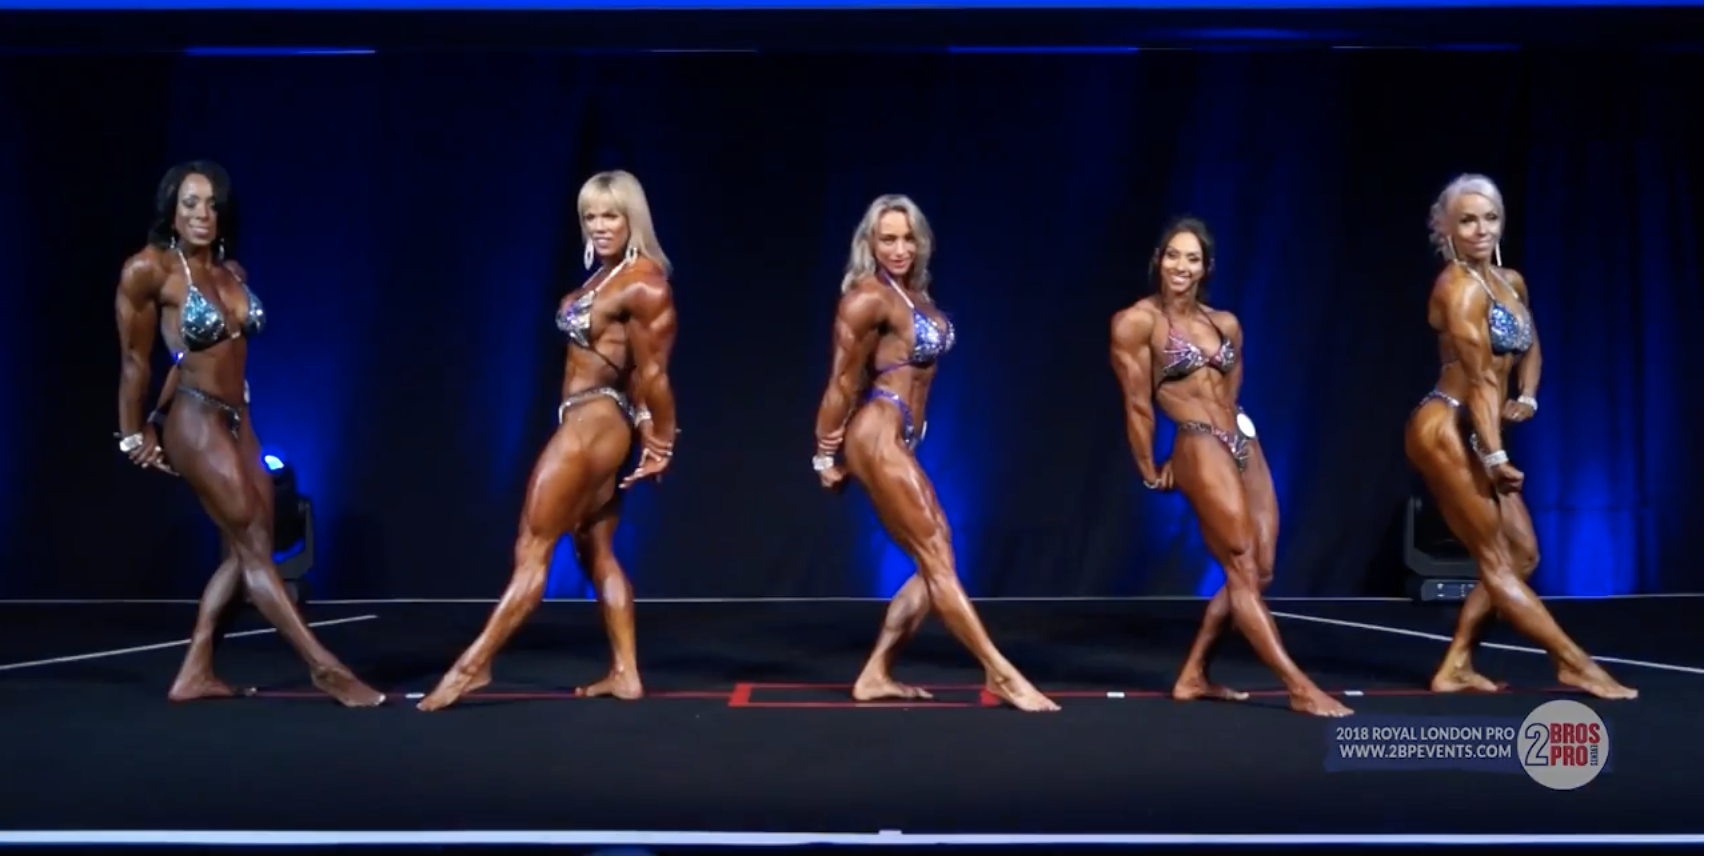 2018 IFBB Royal London Pro Women's Physique Mandatory Poses & Trophy Presentation Video